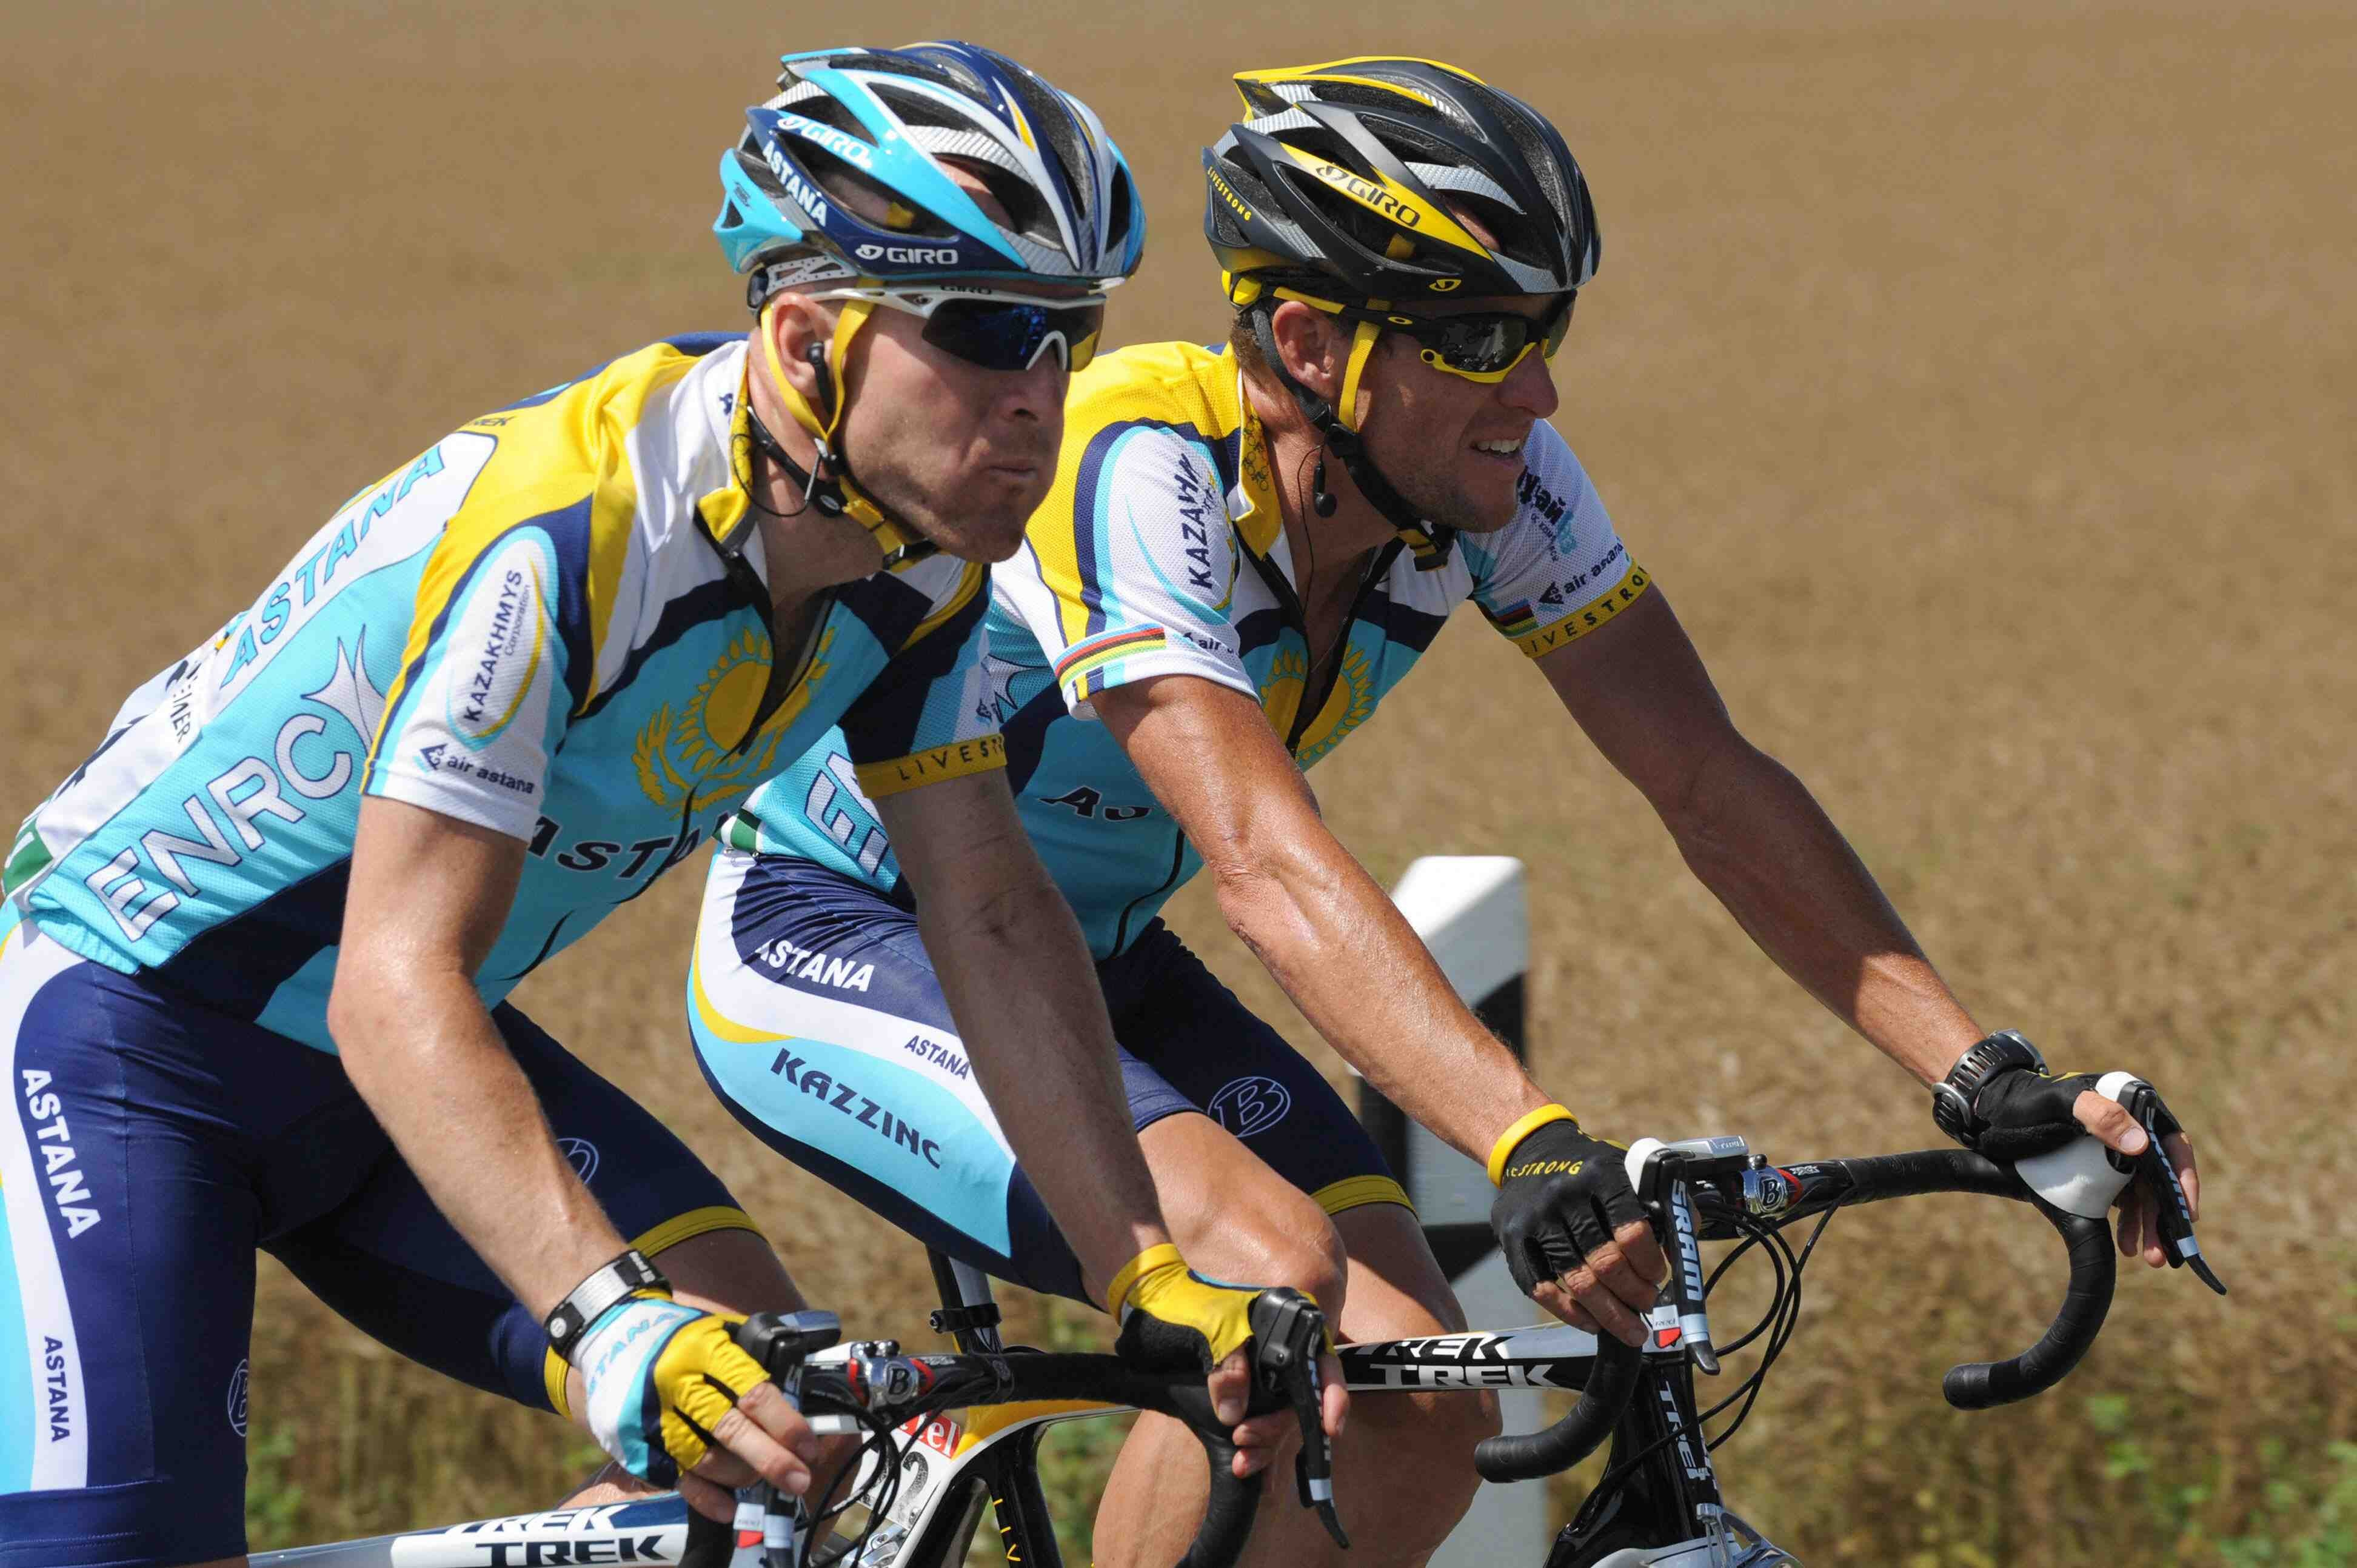 Astana teammates Levi Leipheimer and Lance Armstrong race stage 12 of the 2009 Tour de France July 16.